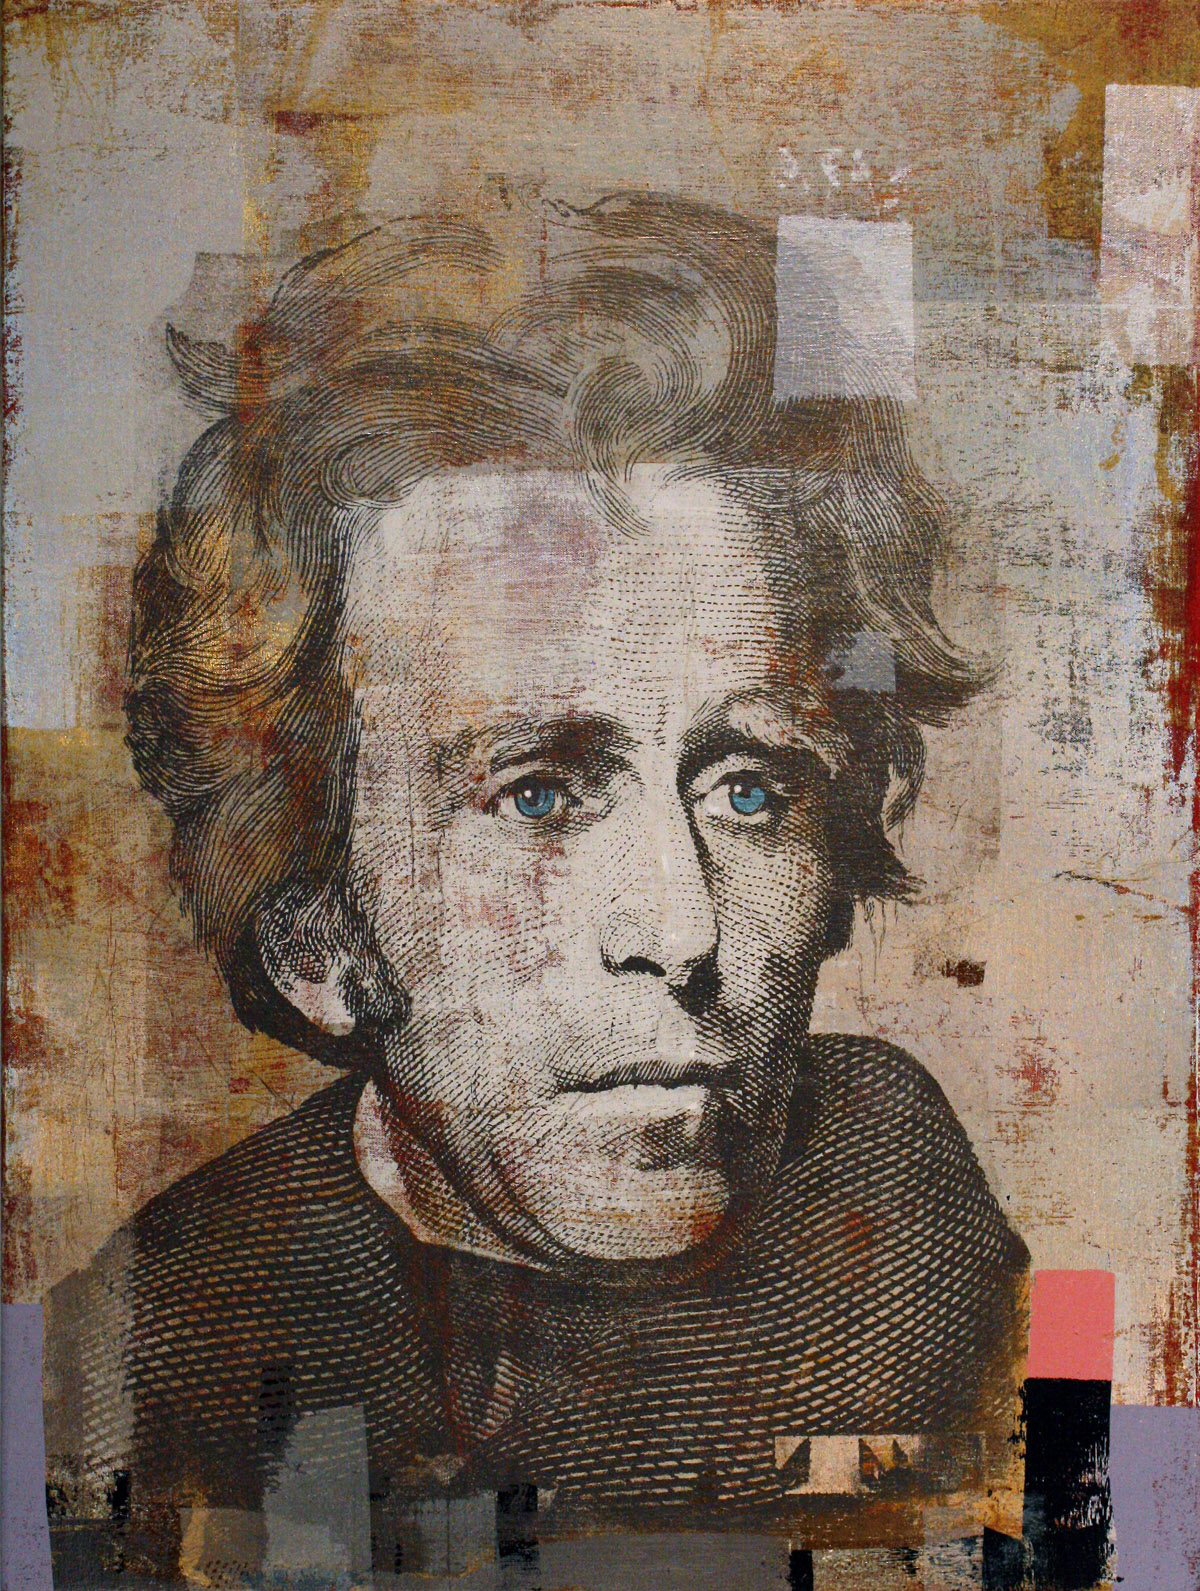 20-Dollars, Andrew Jackson, 40 by 30 2014